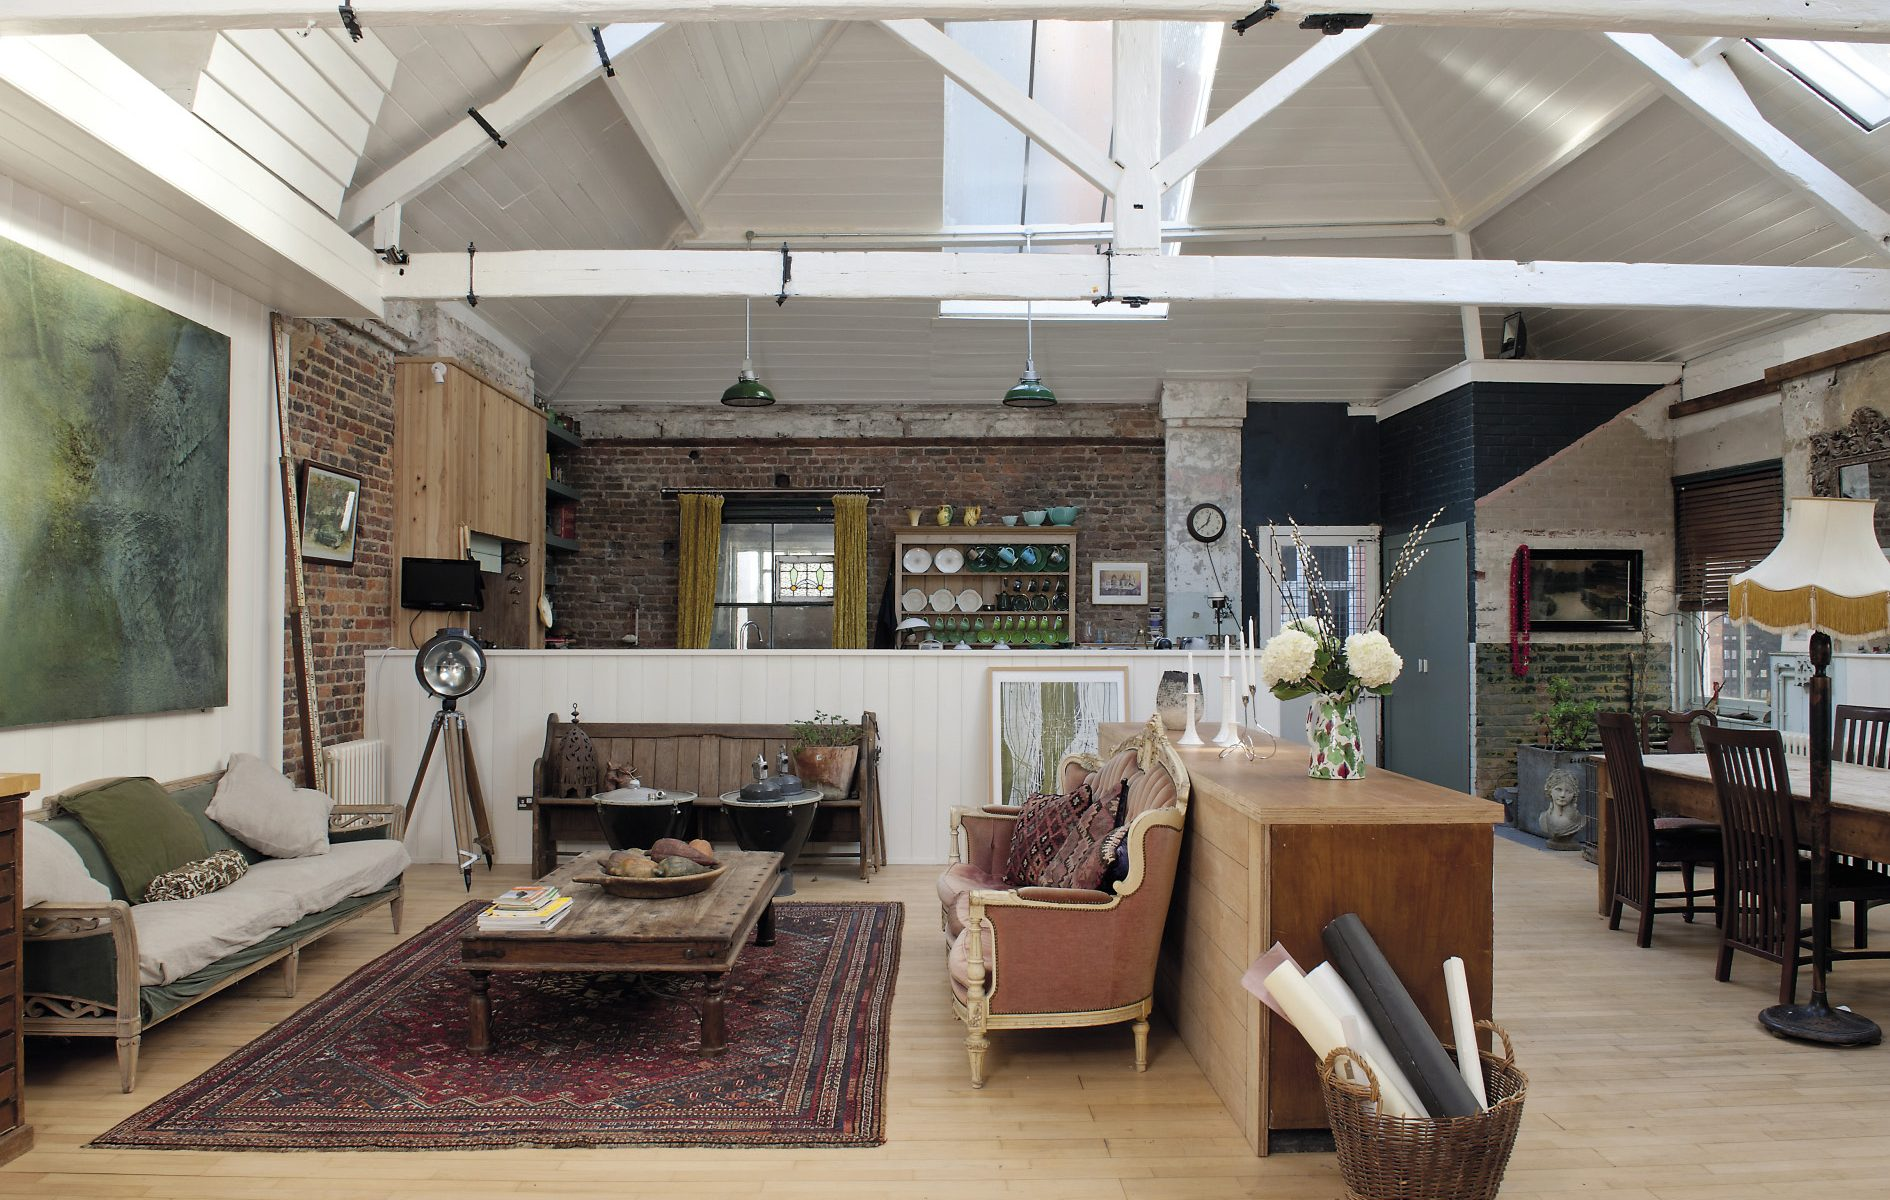 The living room, that also incorporates the kitchen and a dining area, is truly vast, soaring up past huge white-painted beams to the pitched roof. On one side the walls are of bare brick and on the other of age-damaged render